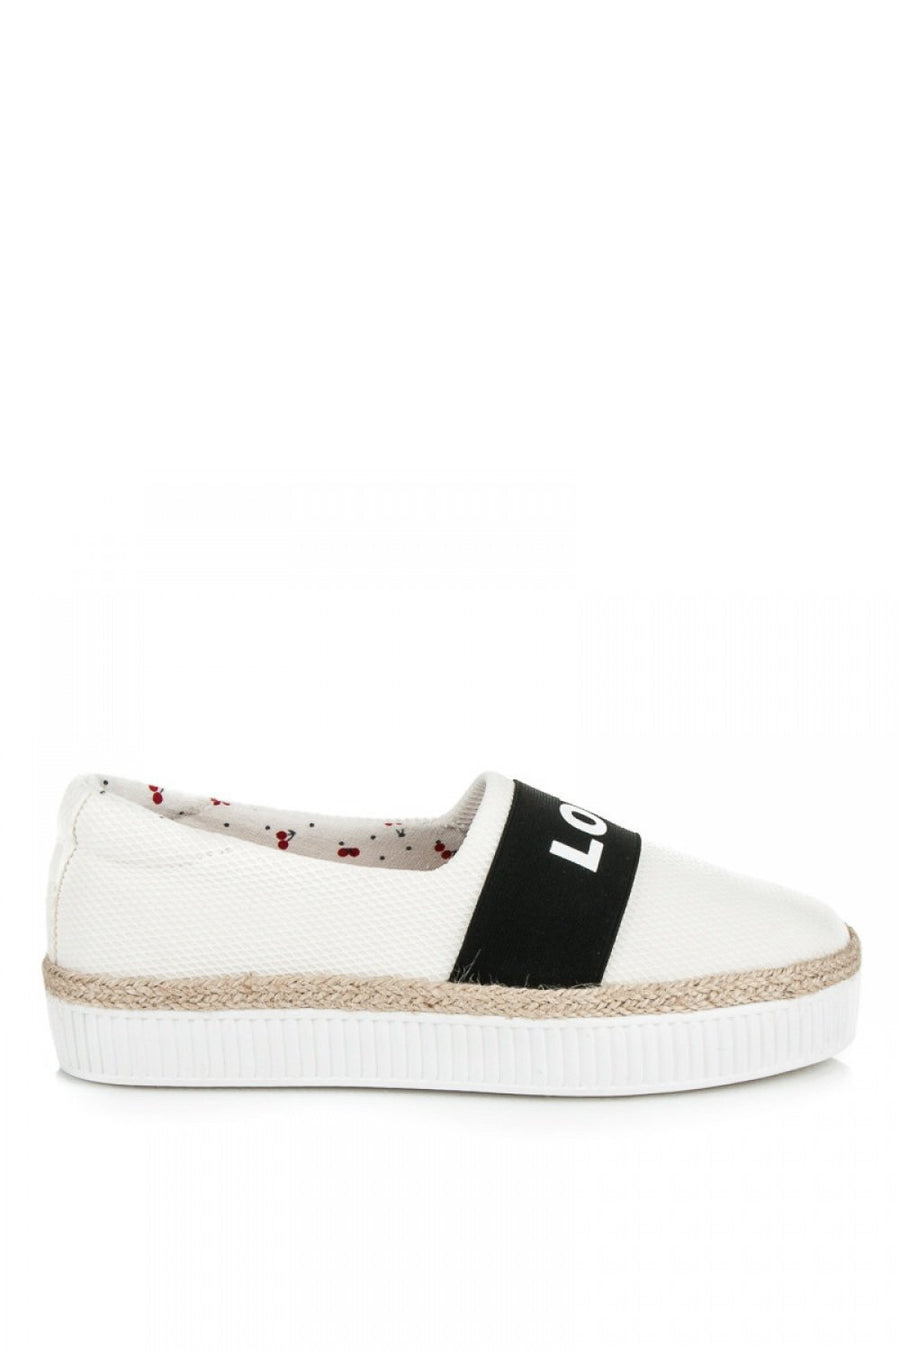 Espadrille 75661 Zoki-Women`s Athletic Shoes, Trainers, Sneakers-Zoki-Très Fancy